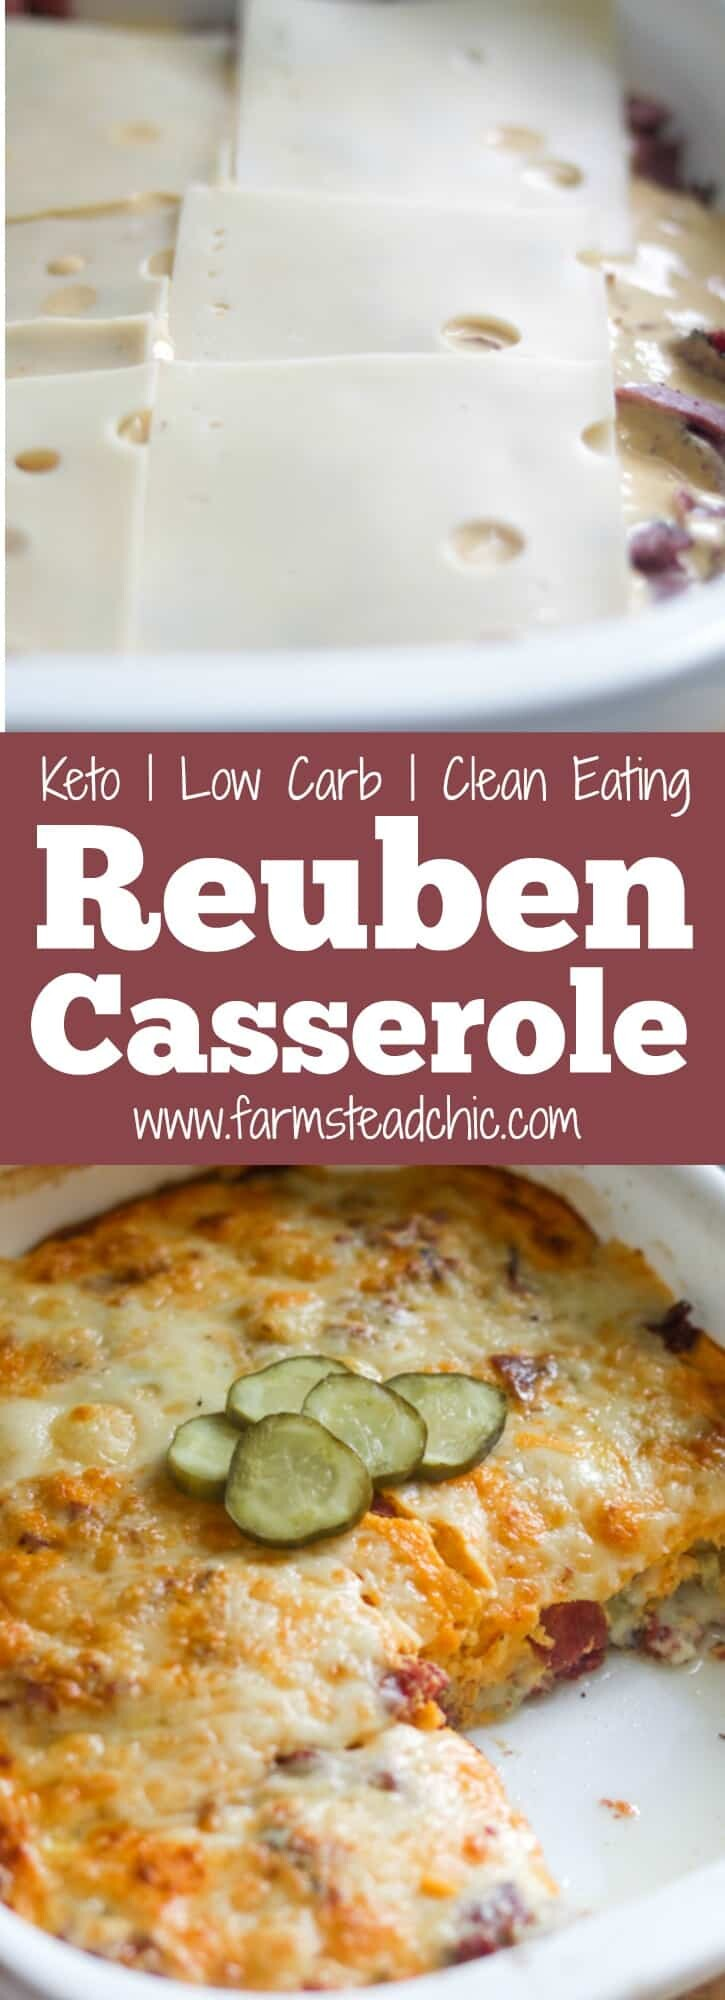 Low Carb, Keto Reuben Casserole Pinterest Graphic